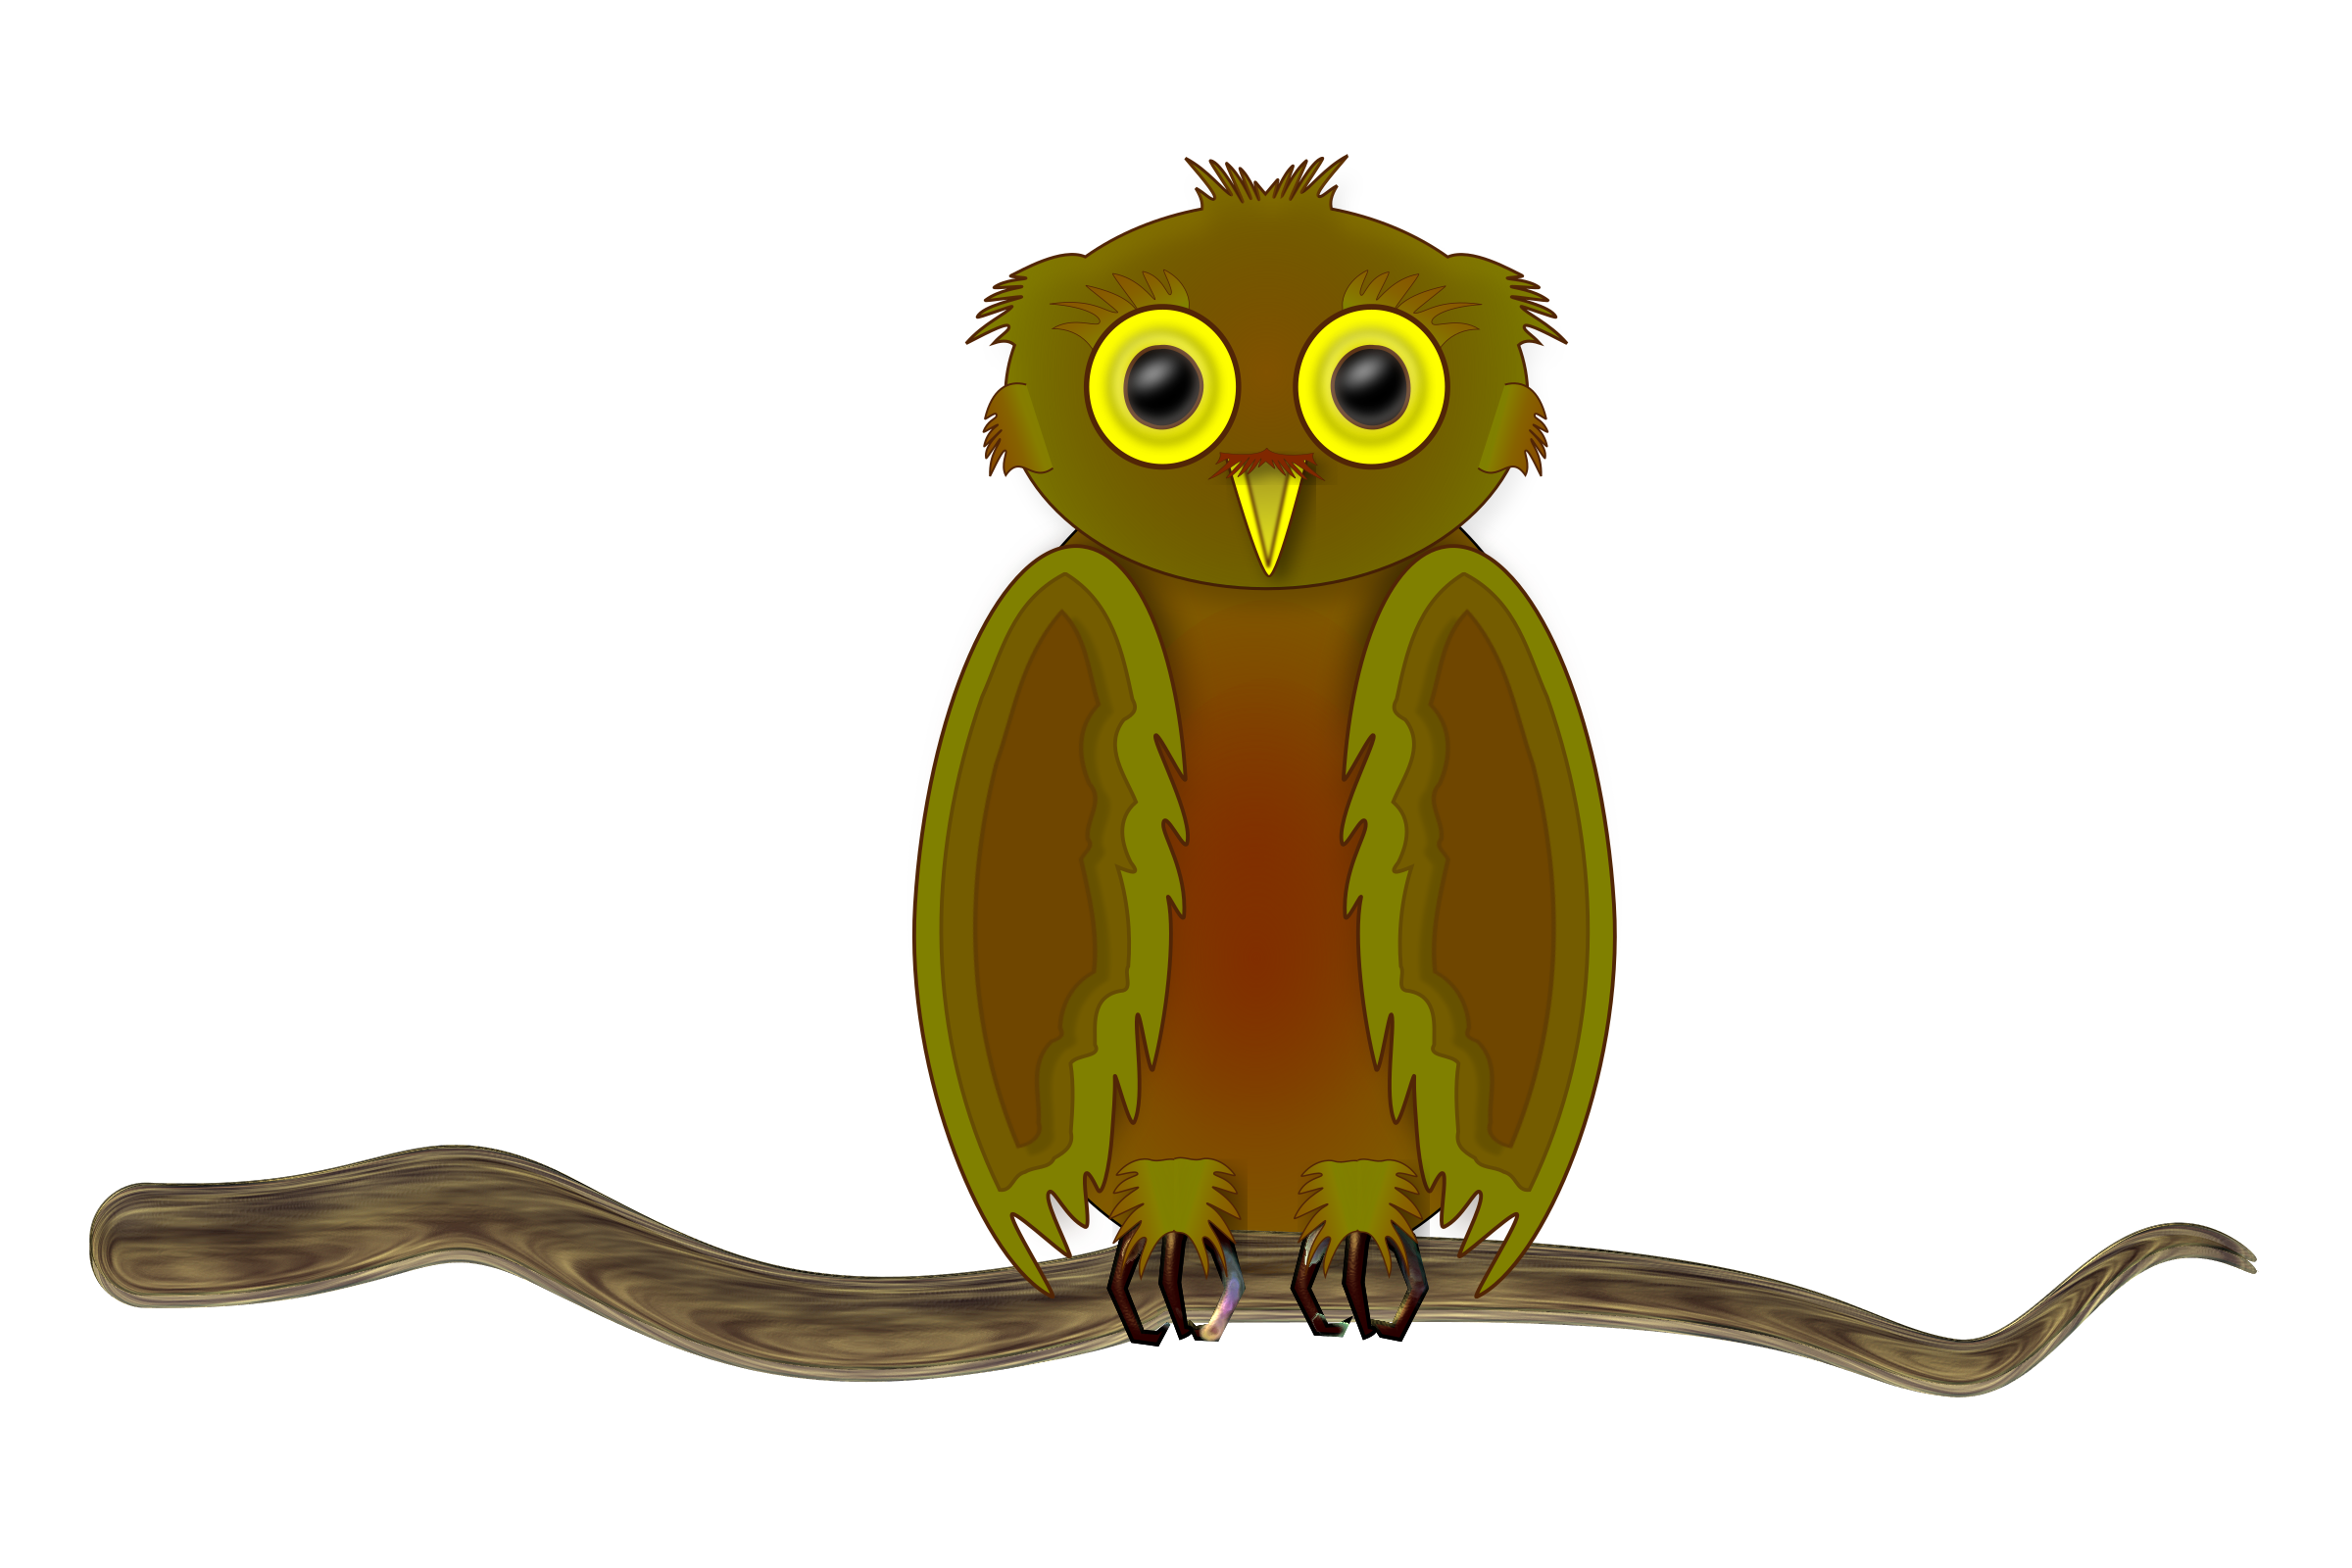 Owl on a Branch by Greg.M